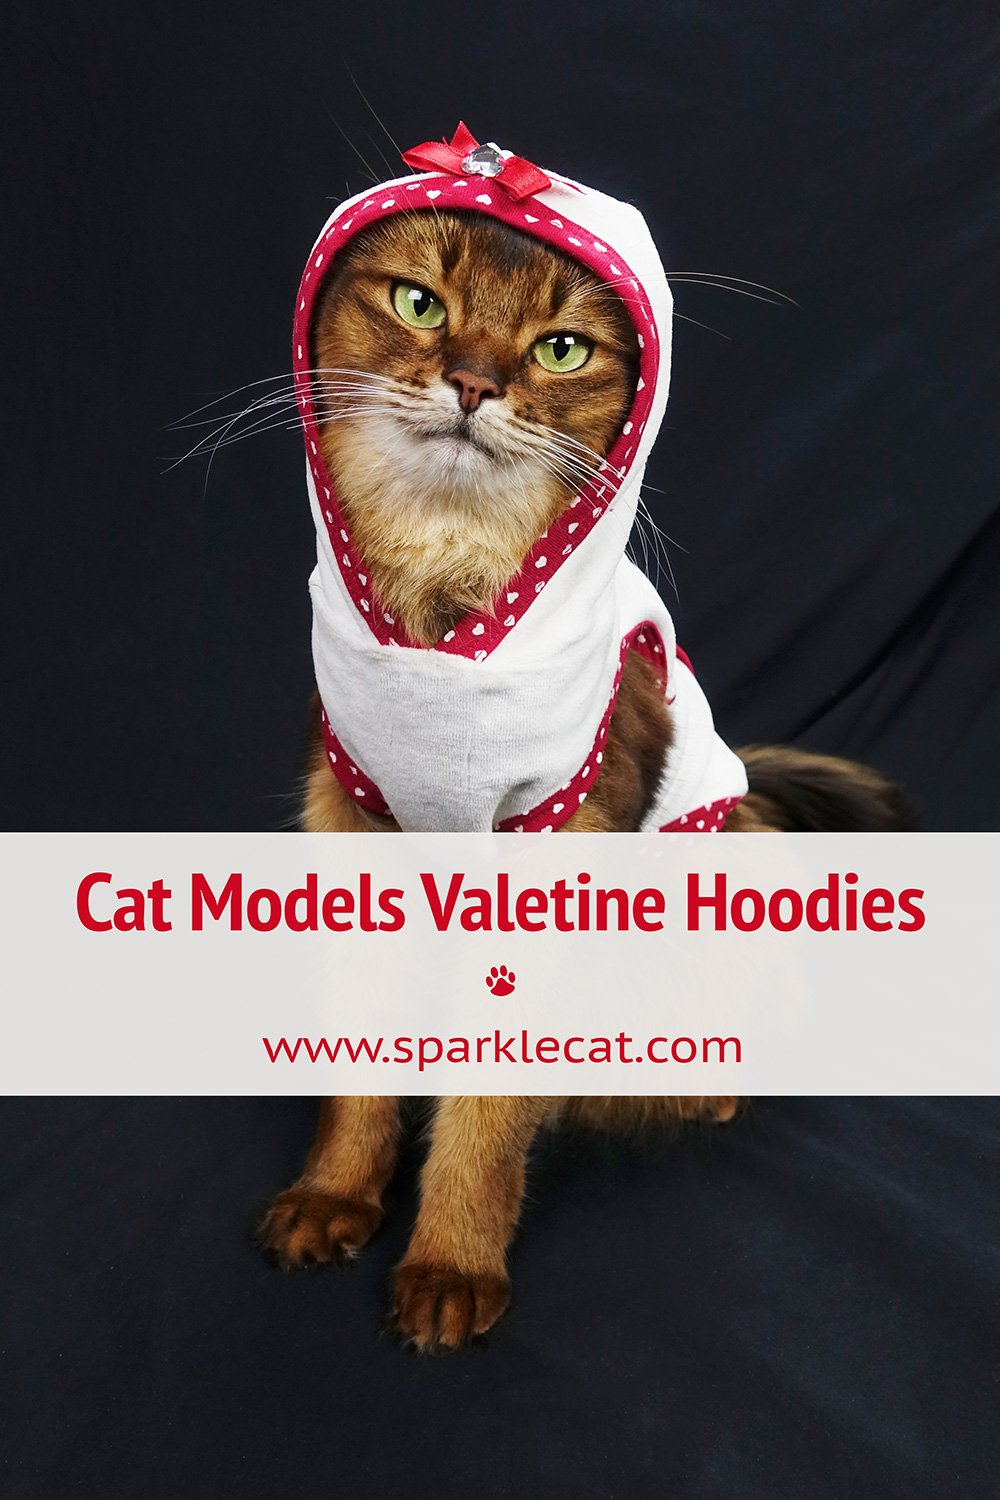 My Valentine Hoodies